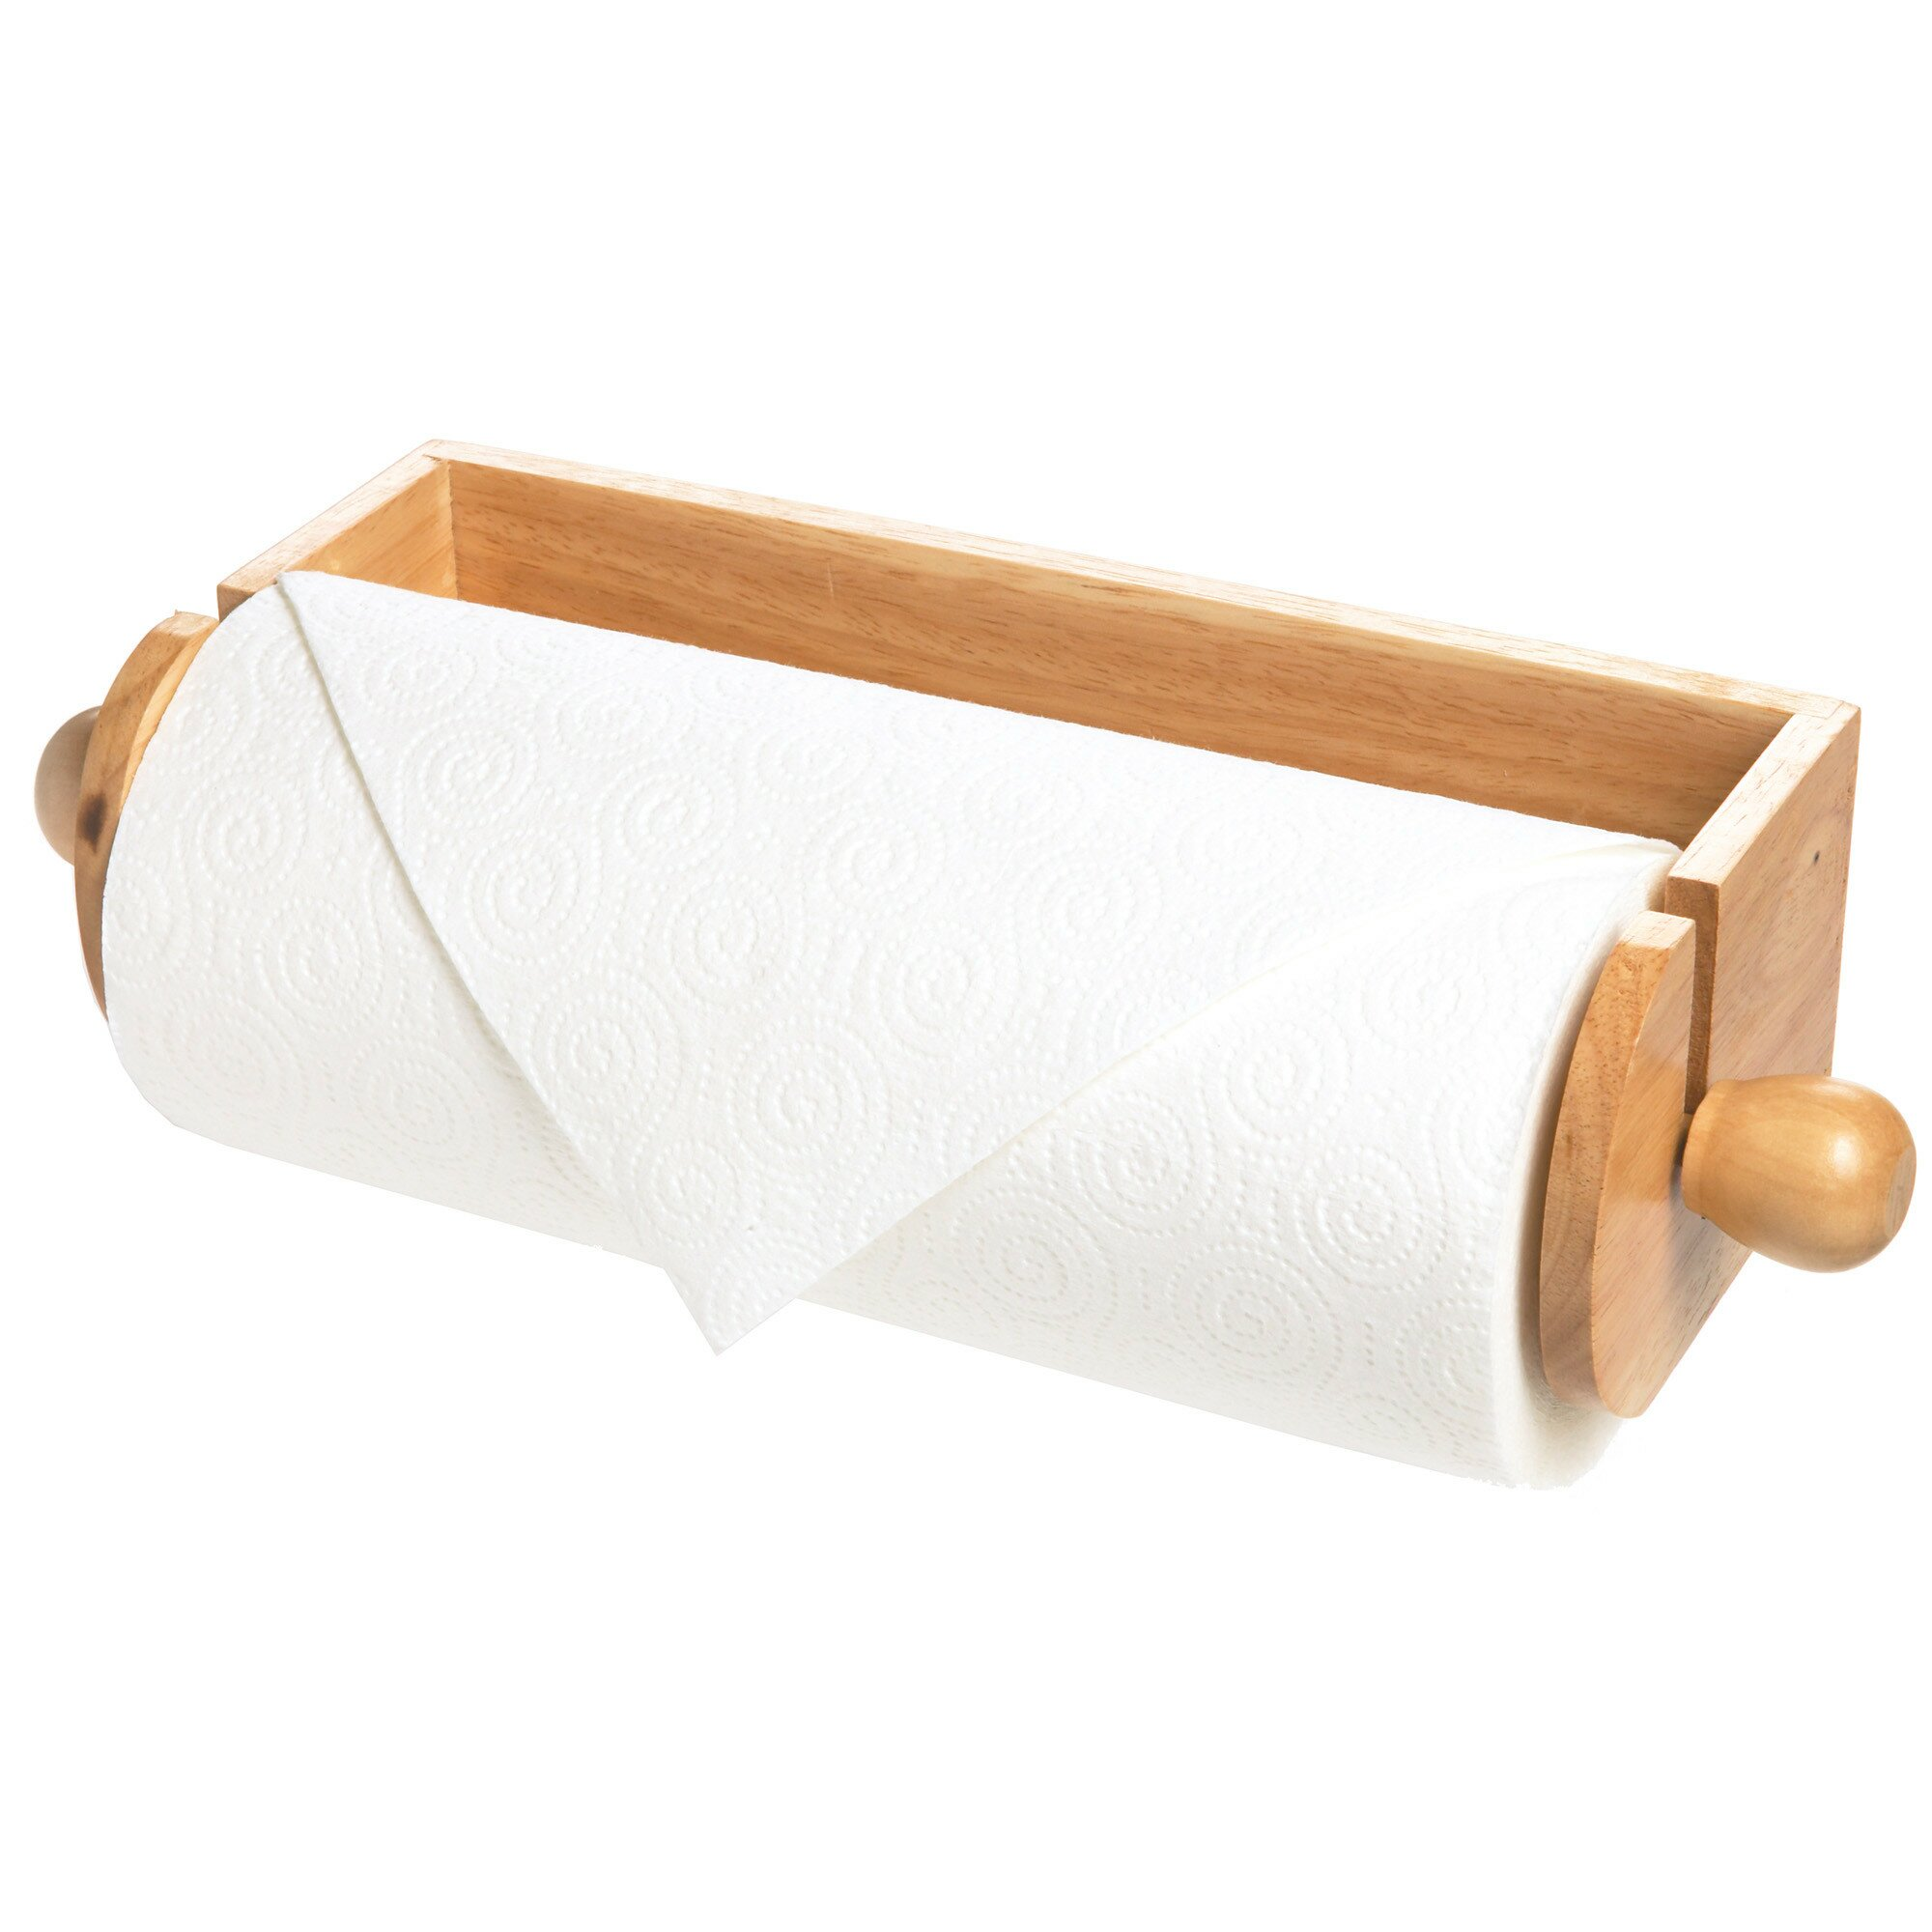 Red Barrel Studio Brown Paper Towel Holder  Reviews Wayfair -  bathroom paper towel holder